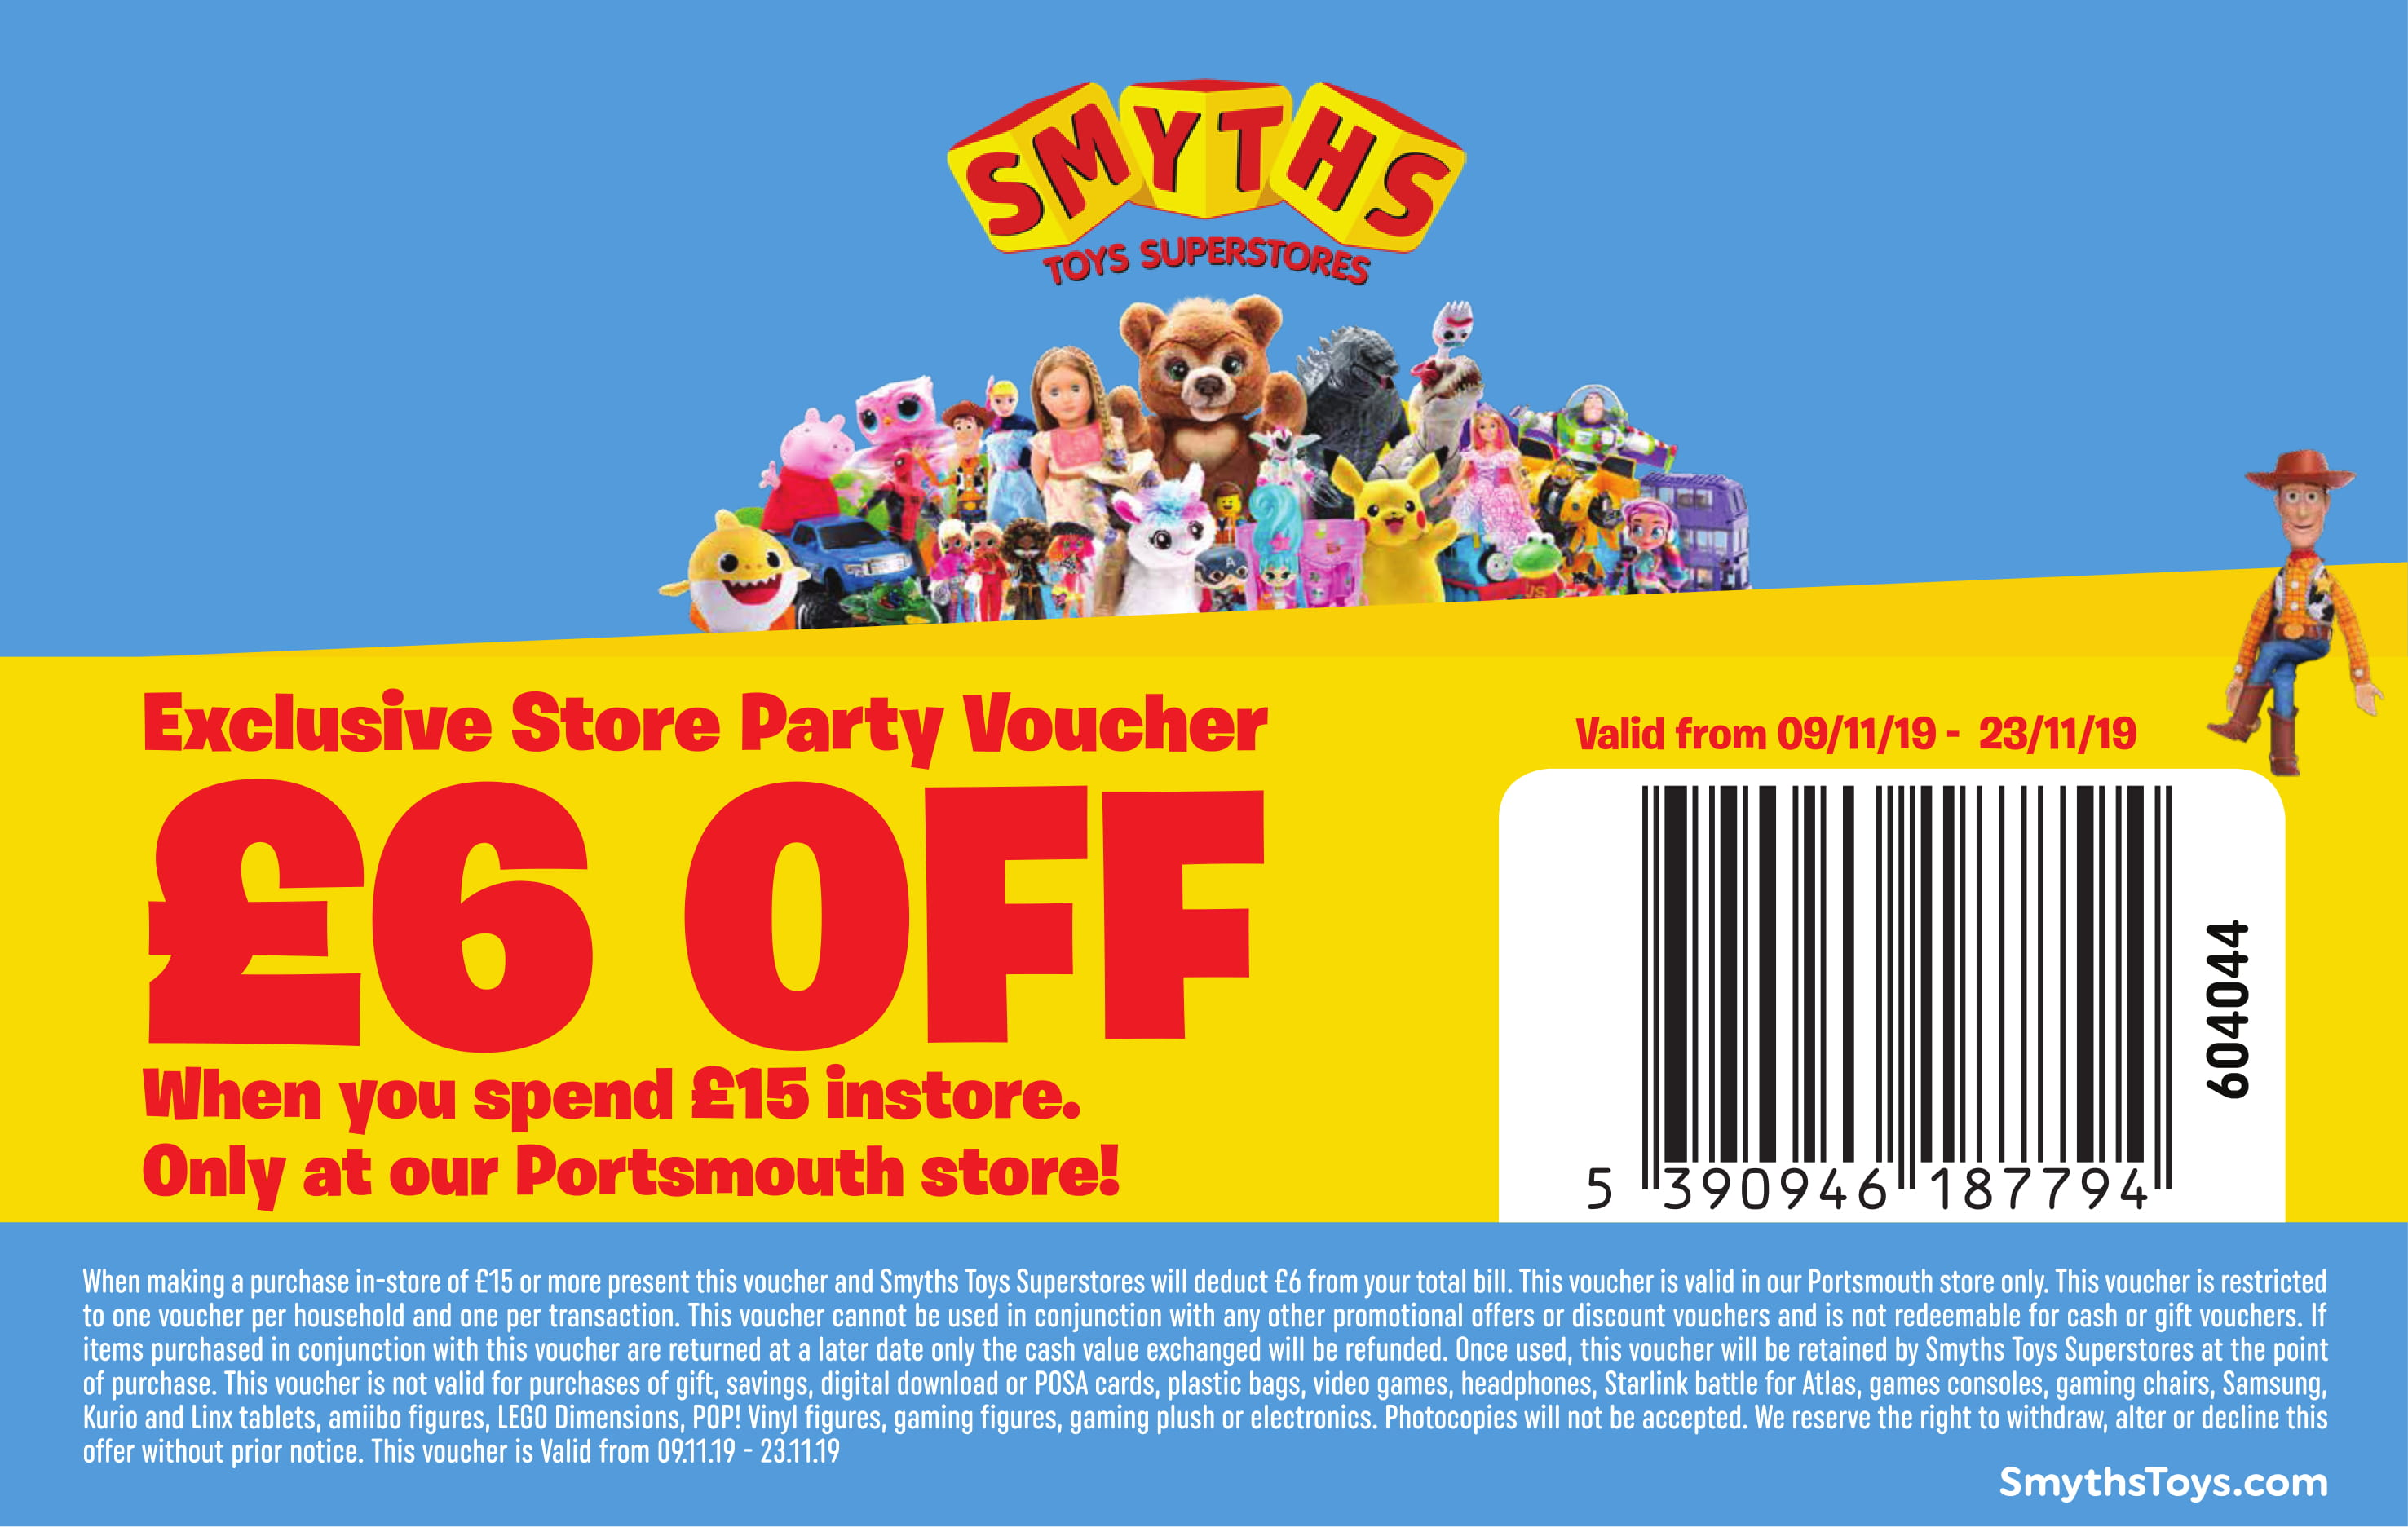 Full Download Roblox S Myths New Facility Portsmouth Opening Voucher Smyths Toys